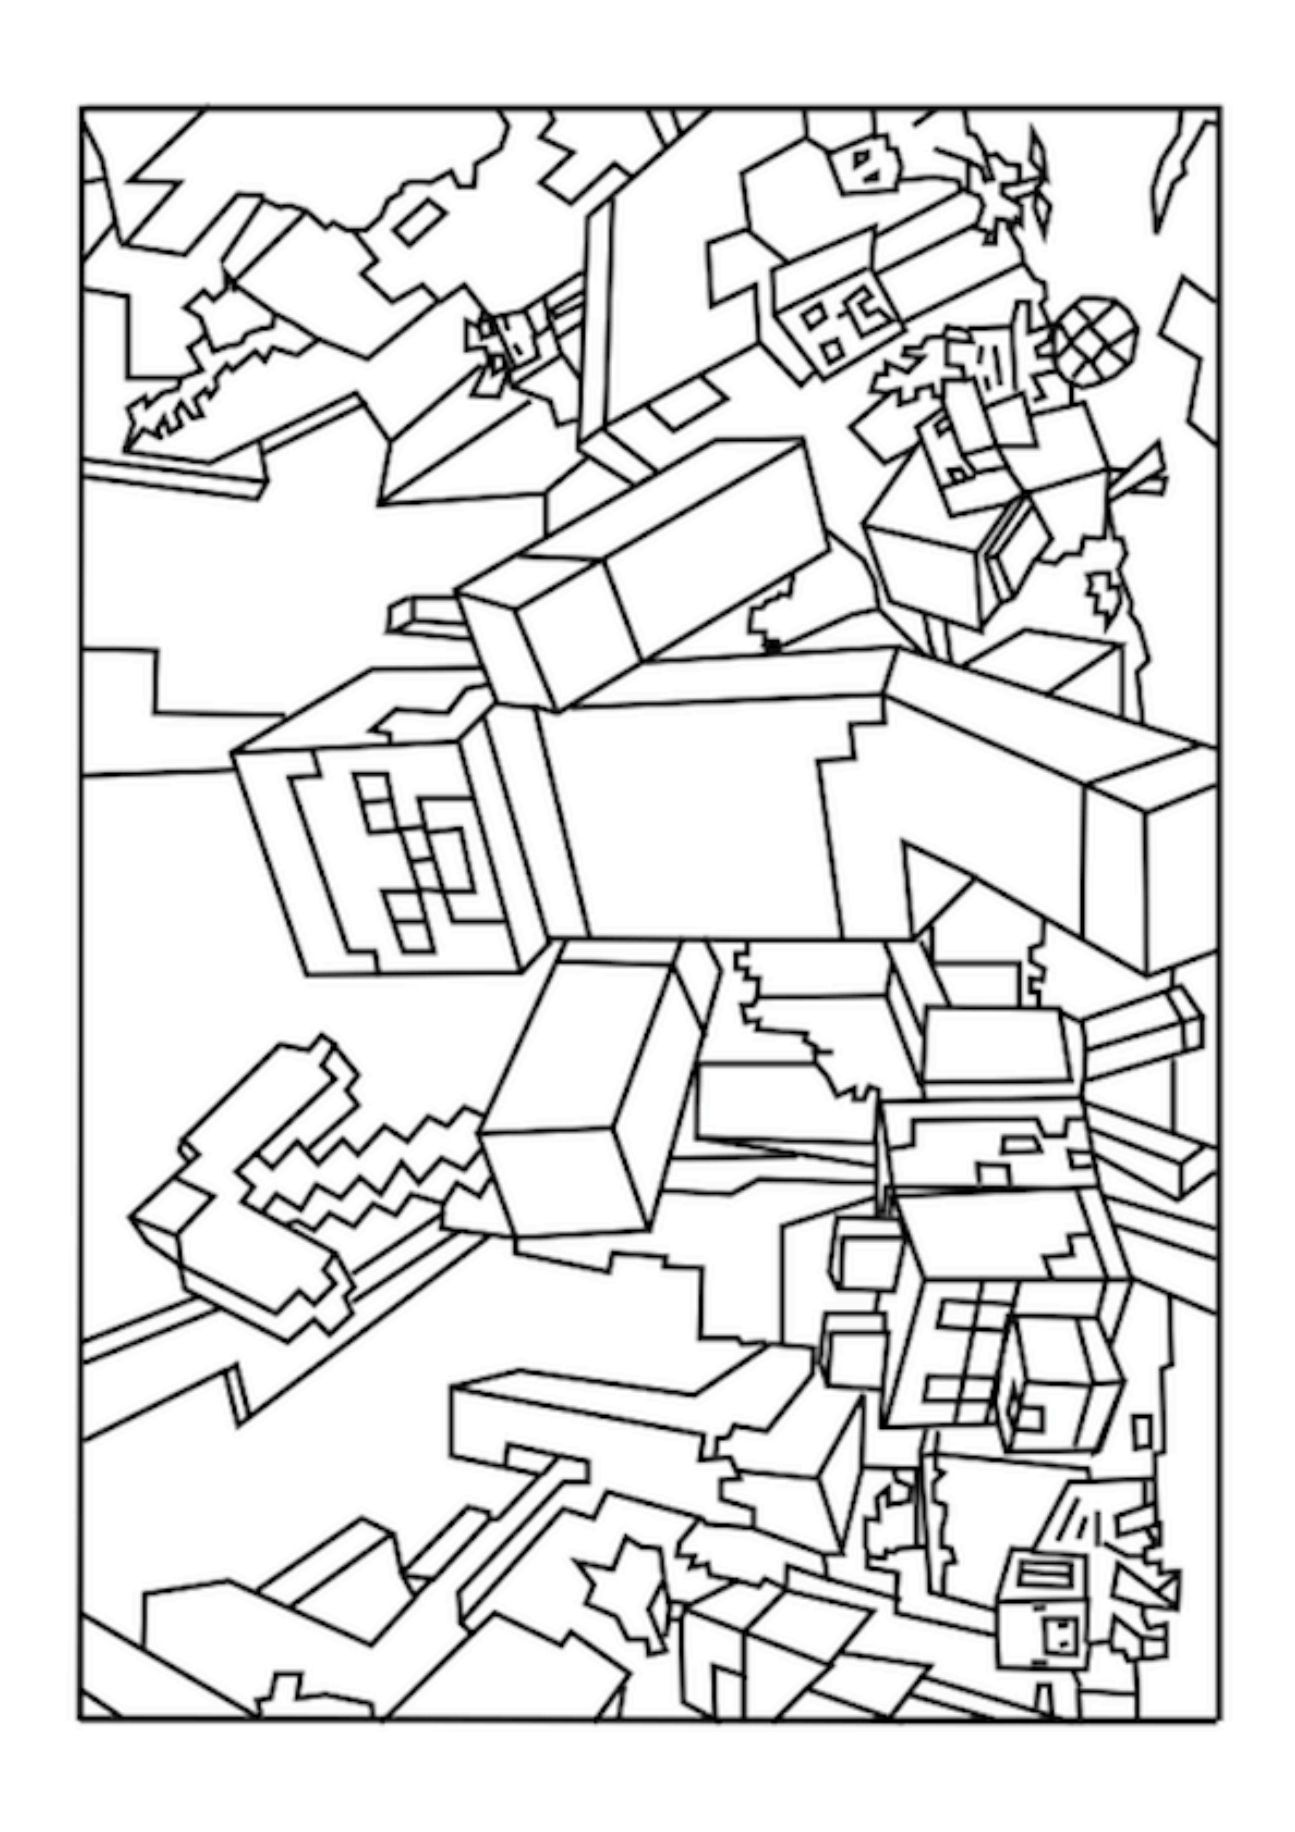 coloring minecraft worksheets minecraft coloring pages best coloring pages for kids minecraft worksheets coloring